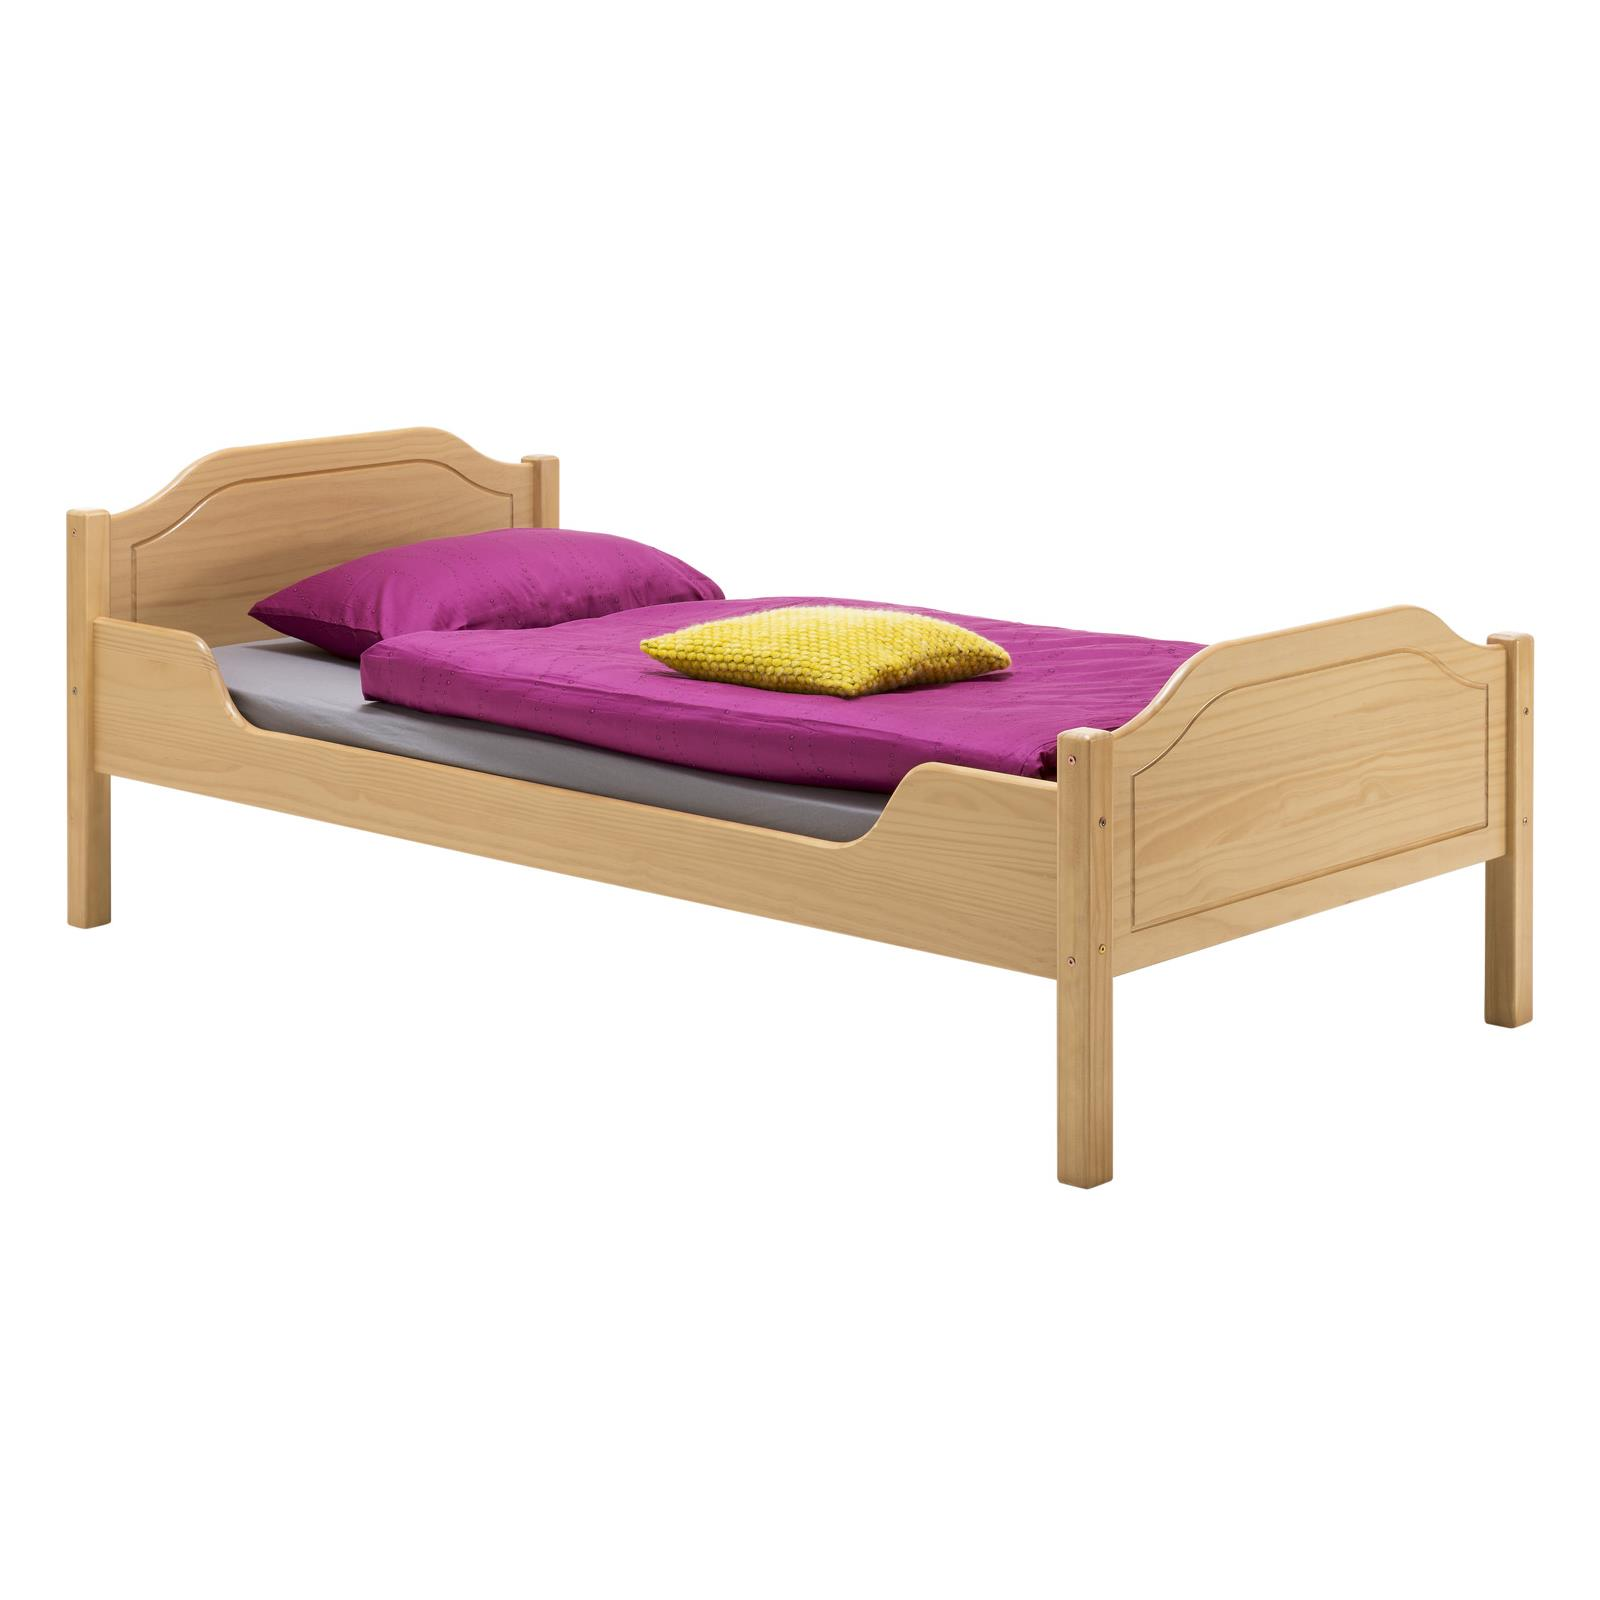 holzbett landhausbett einzelbett doppelbett kiefer massiv 5 gr en 4 farben ebay. Black Bedroom Furniture Sets. Home Design Ideas